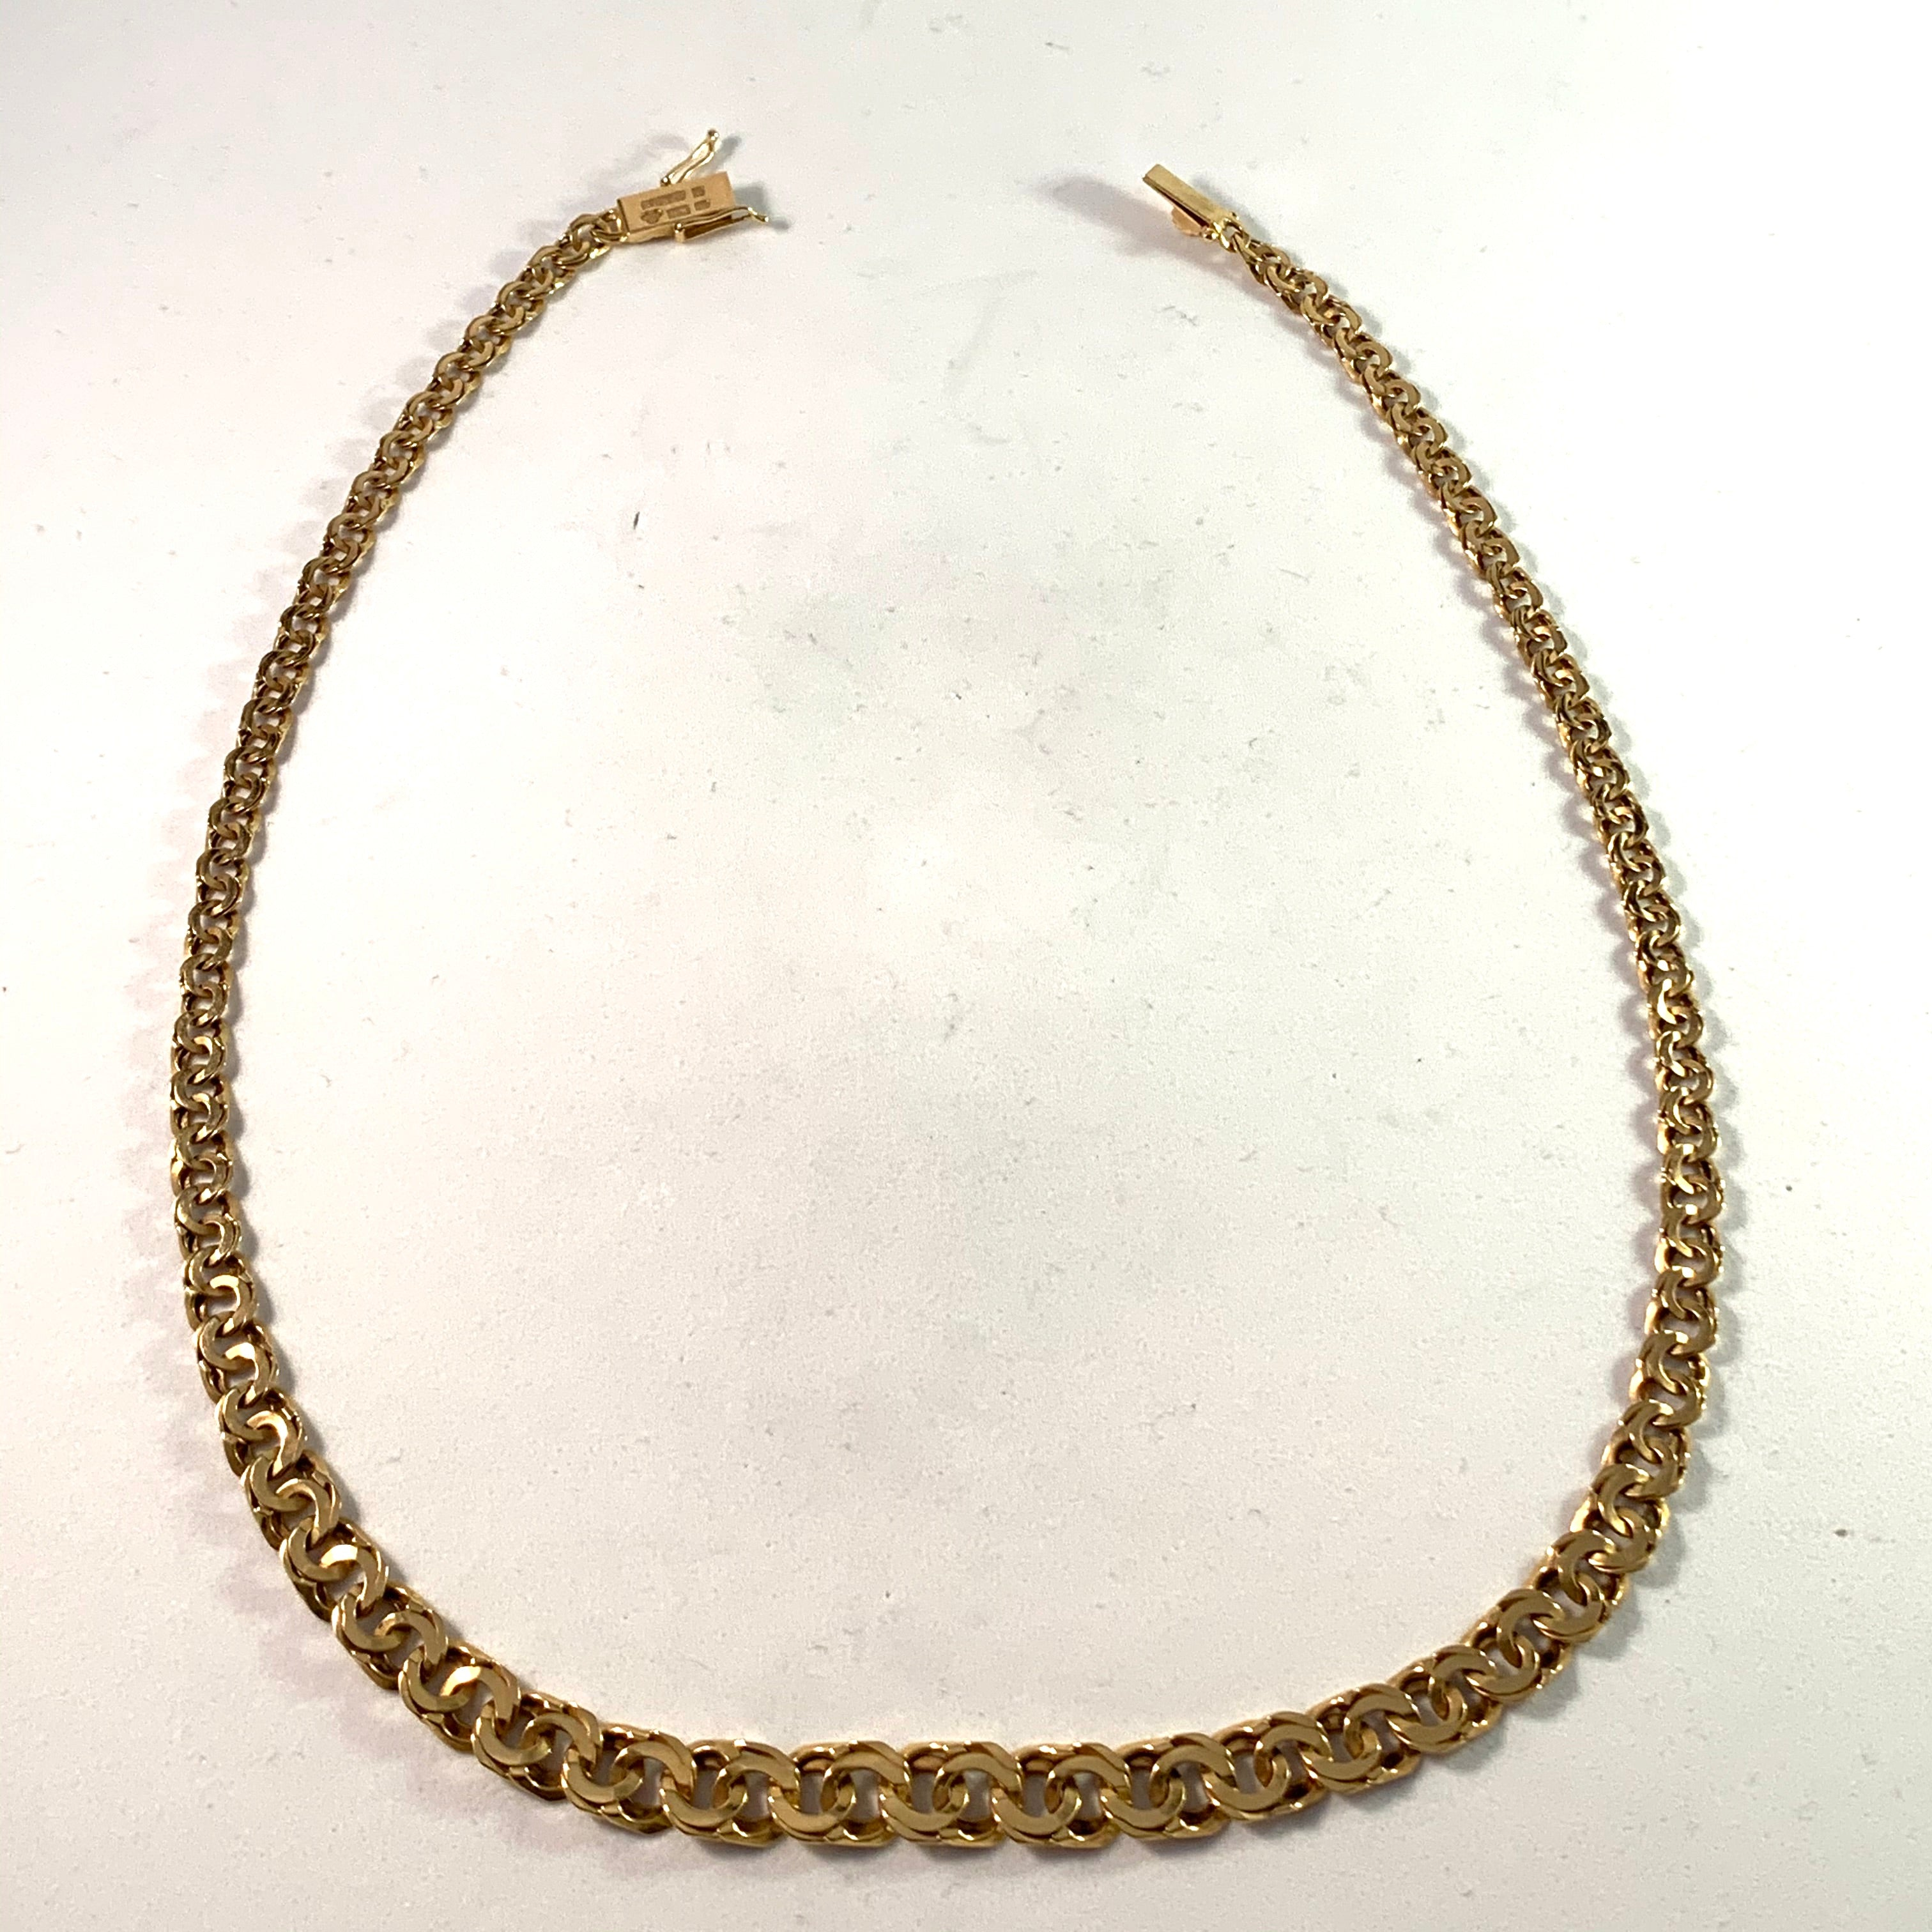 G Dahlgren, Sweden year 1964, 18k Gold Bismarck Necklace.